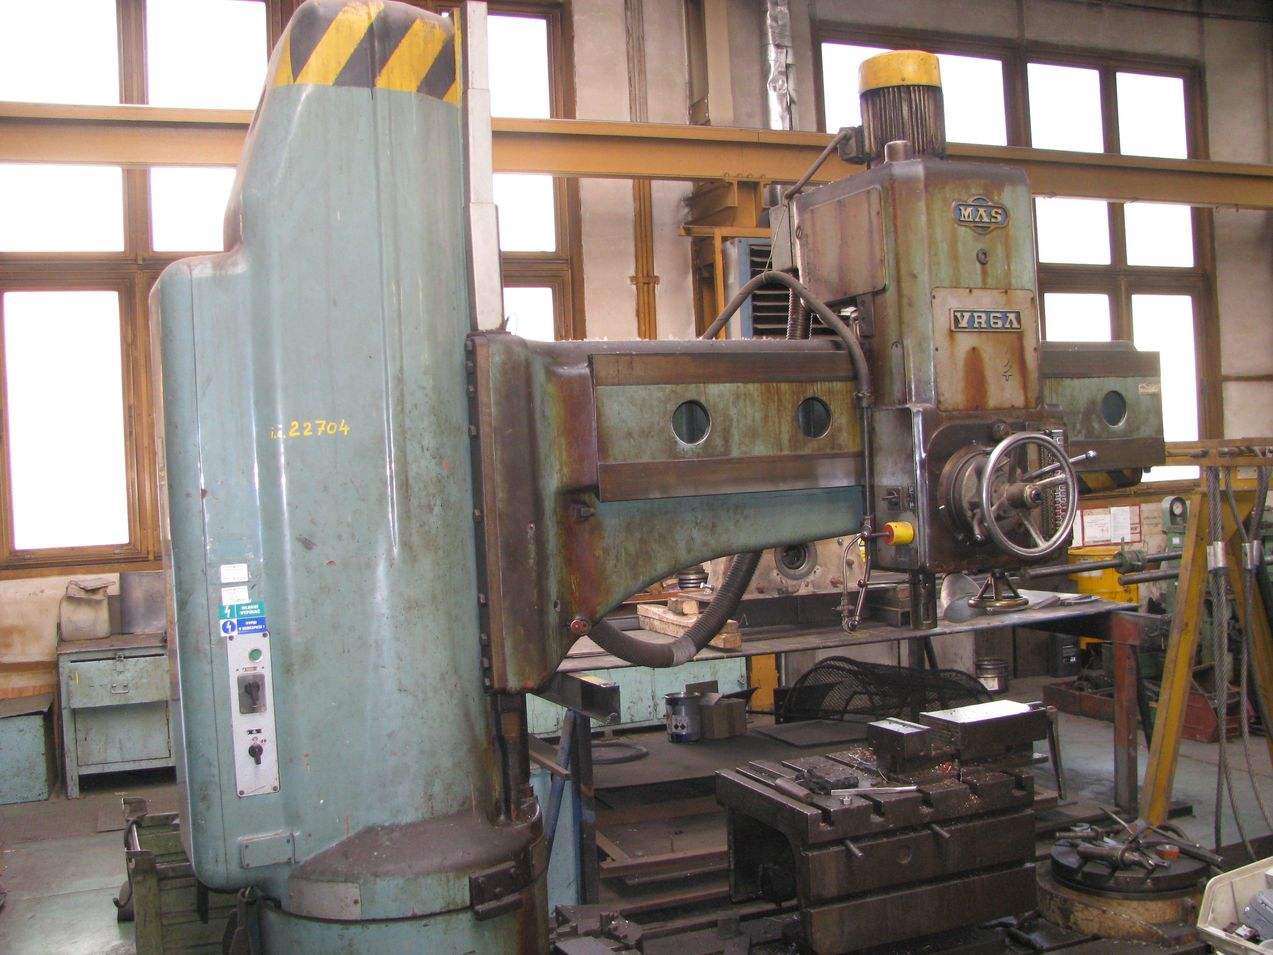 006. Radial drill VR6A